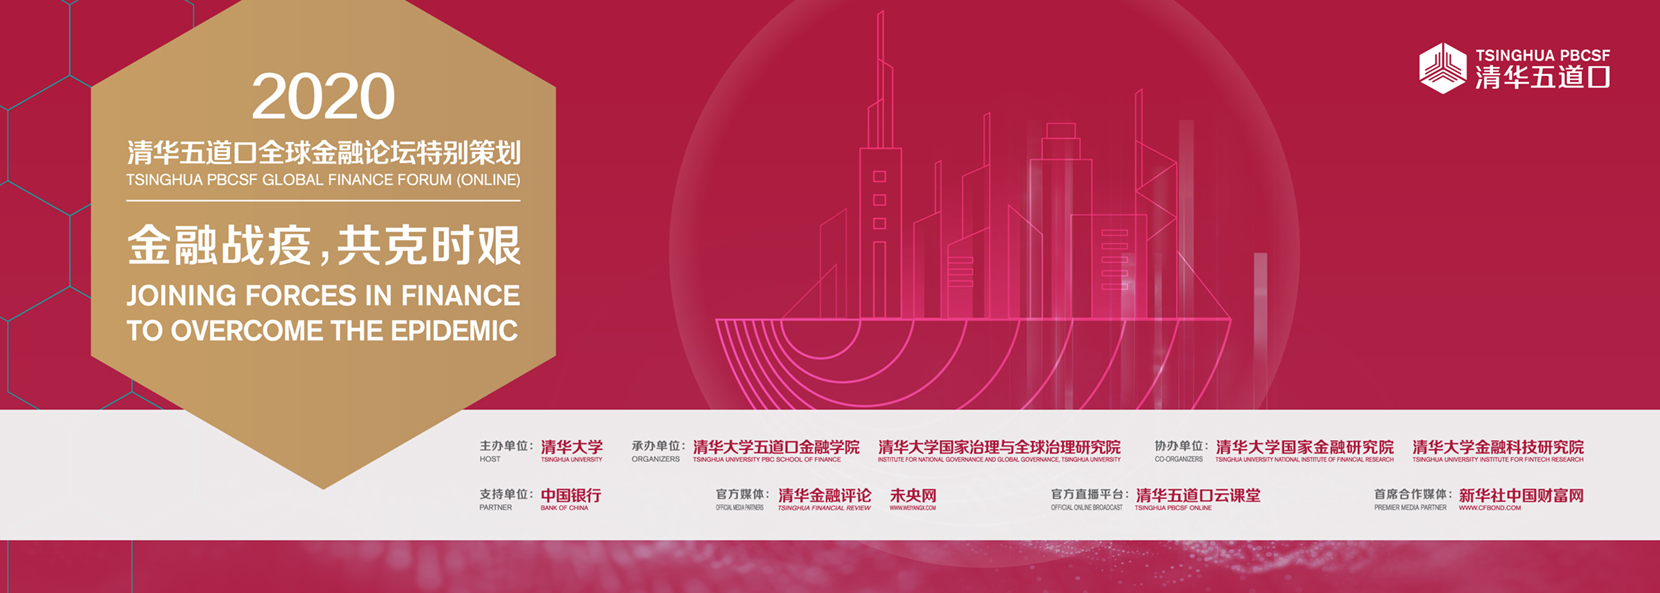 Tsinghua PBCSF Global Finance Forum (Online) 2020